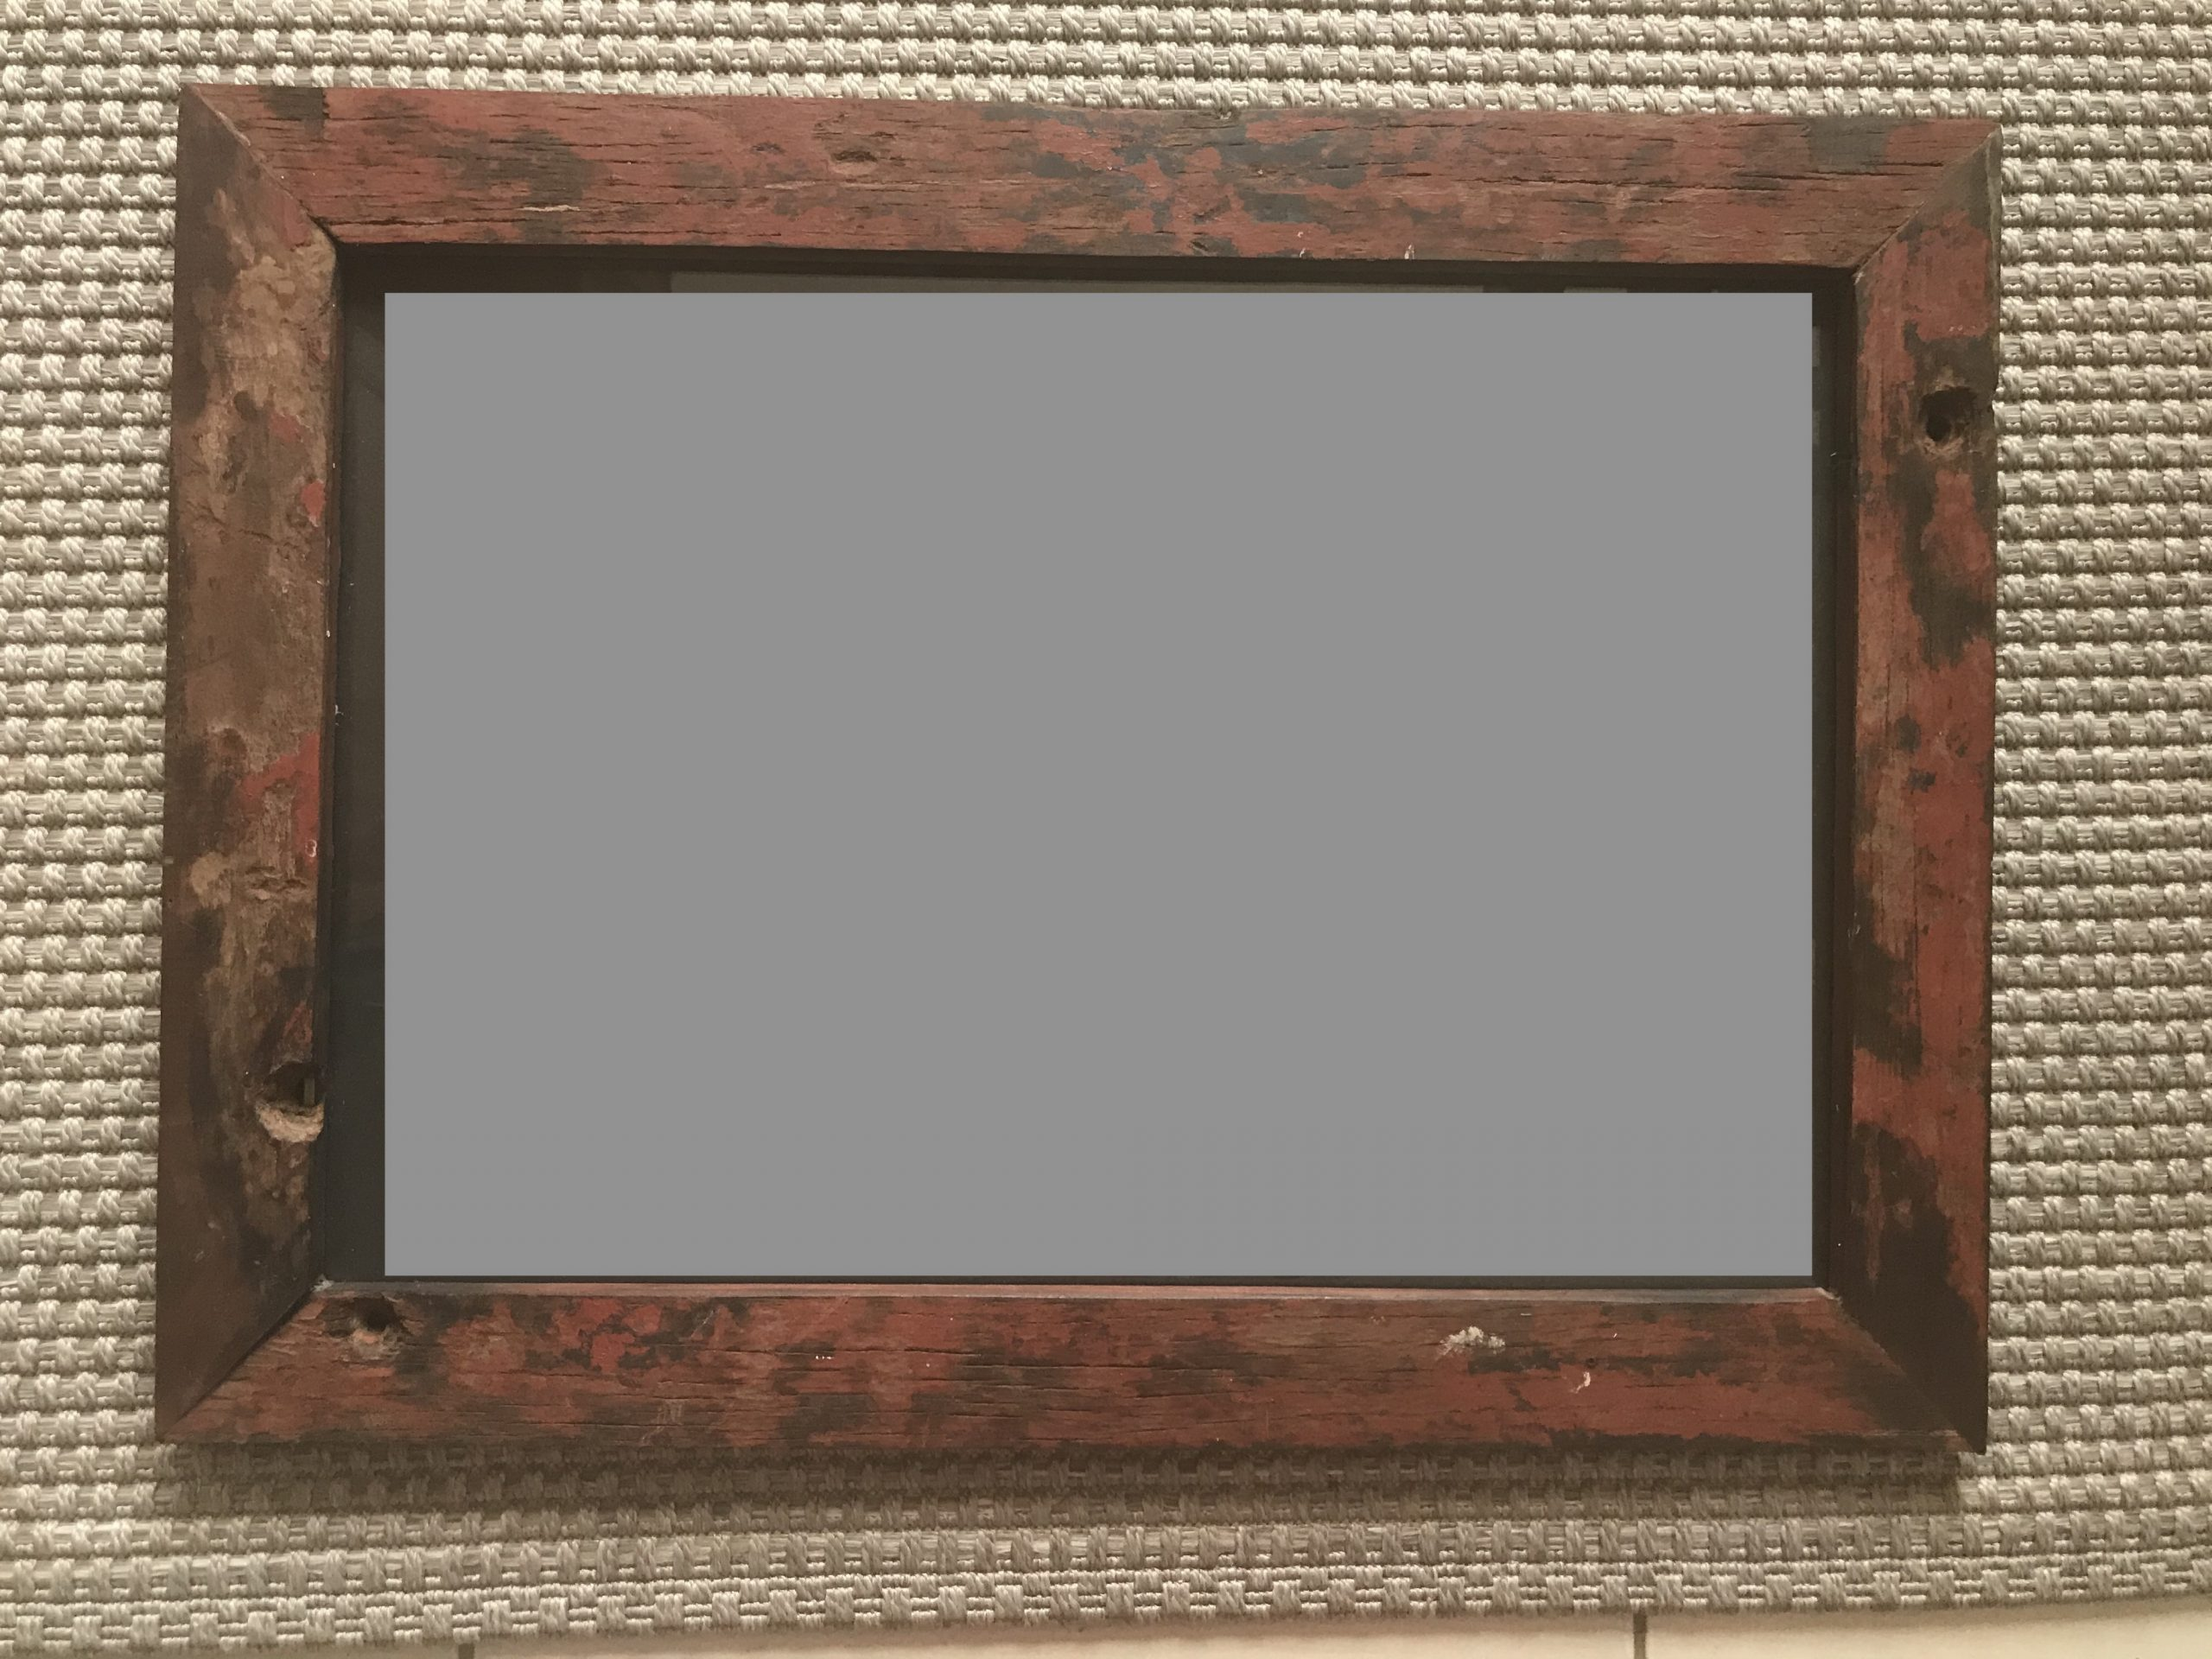 F2 Distressed mirror frame: Small 25cm wide –  $40 (4,000 Ksh) Medium 50cm wide -  $50 (5,000Ksh) Large 70cm wide - $50 (5,000 Ksh)